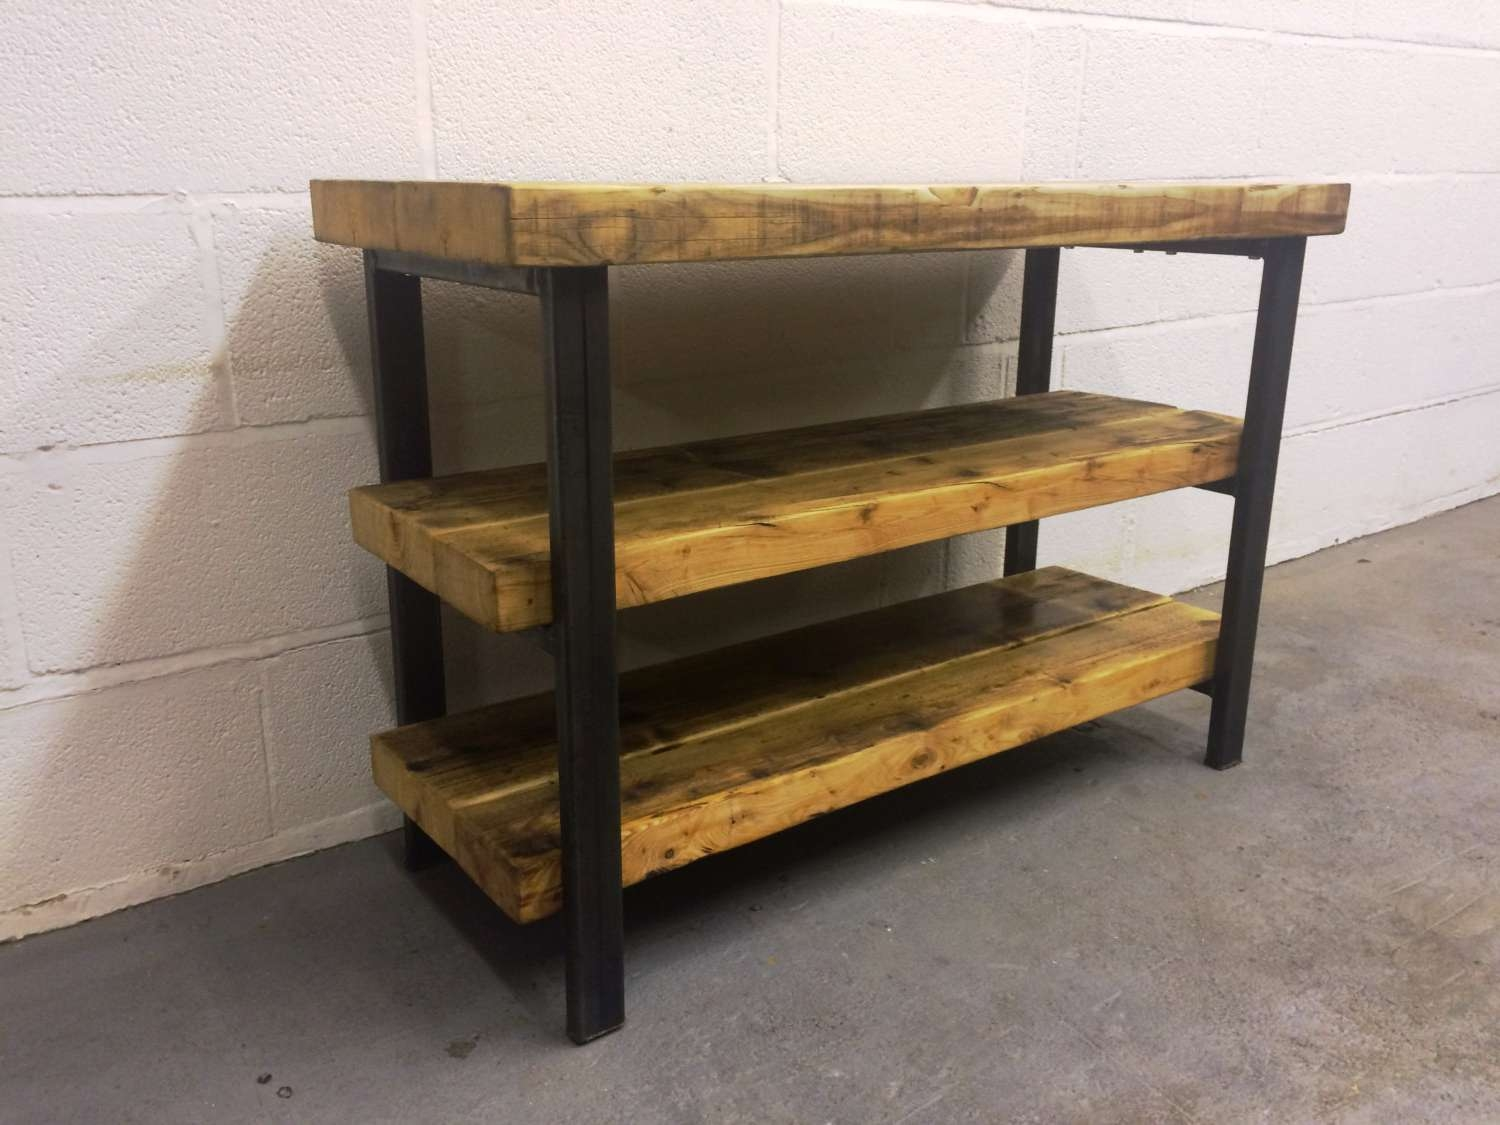 Industrial Chic Reclaimed Tv Stand Media Centre Coffee Table Inside Wood And Metal Tv Stands (View 1 of 15)